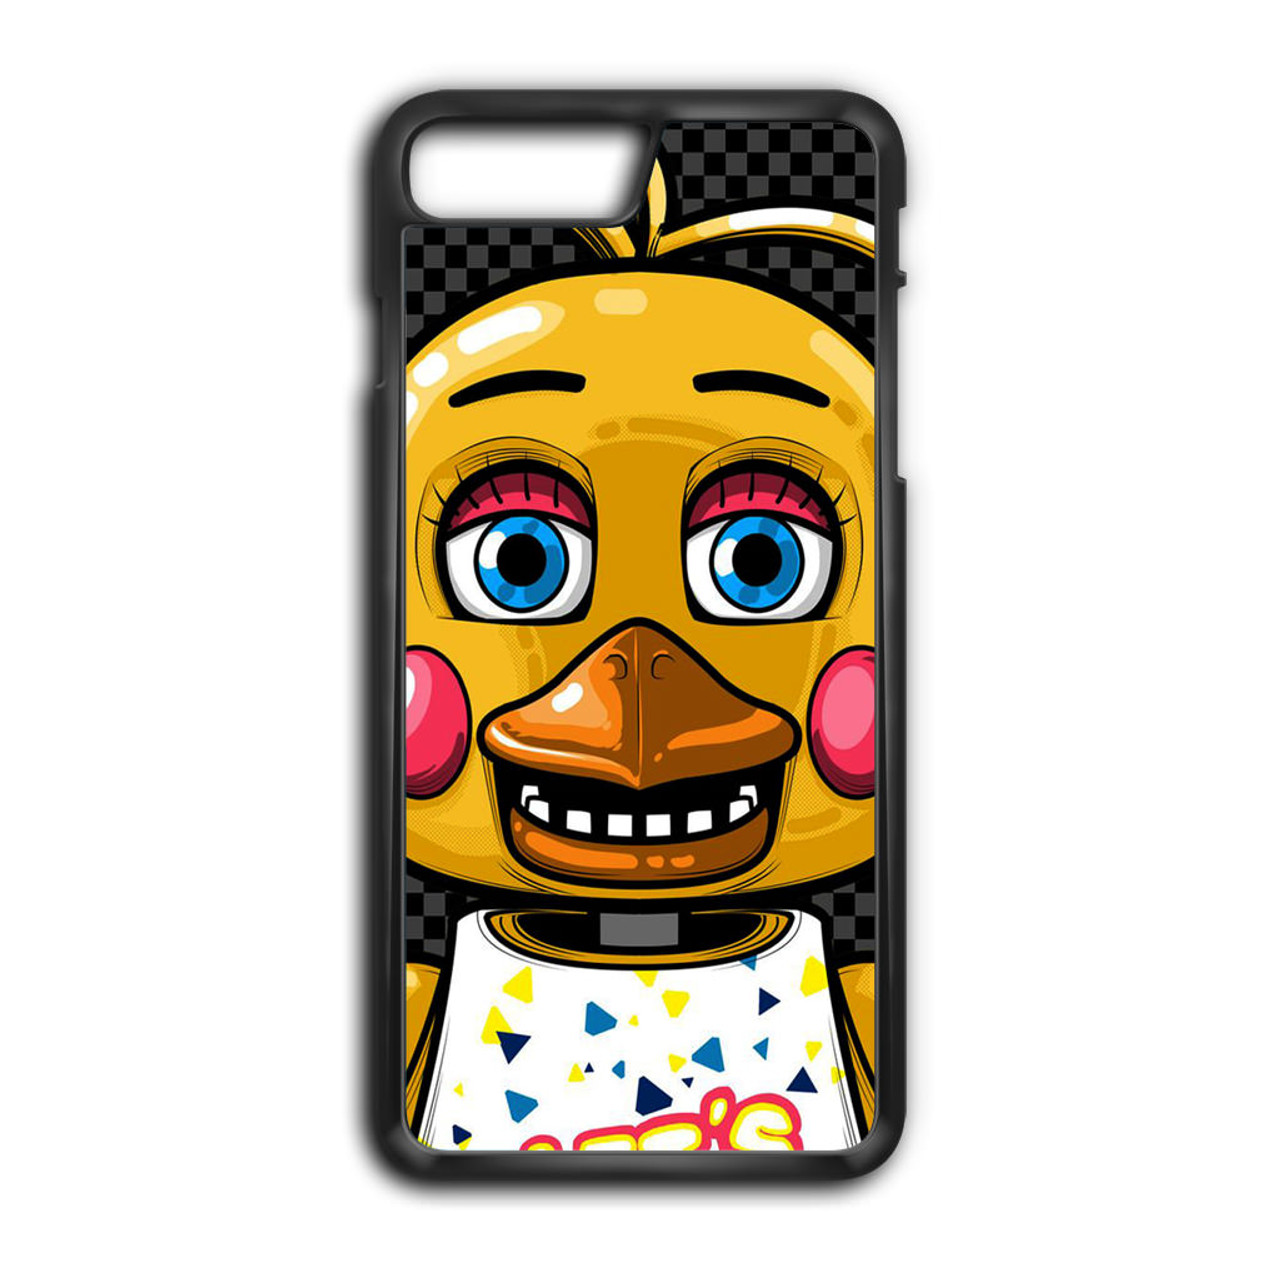 5 Nights At Freddy's Chica five nights at freddy´s chica iphone 7 plus case